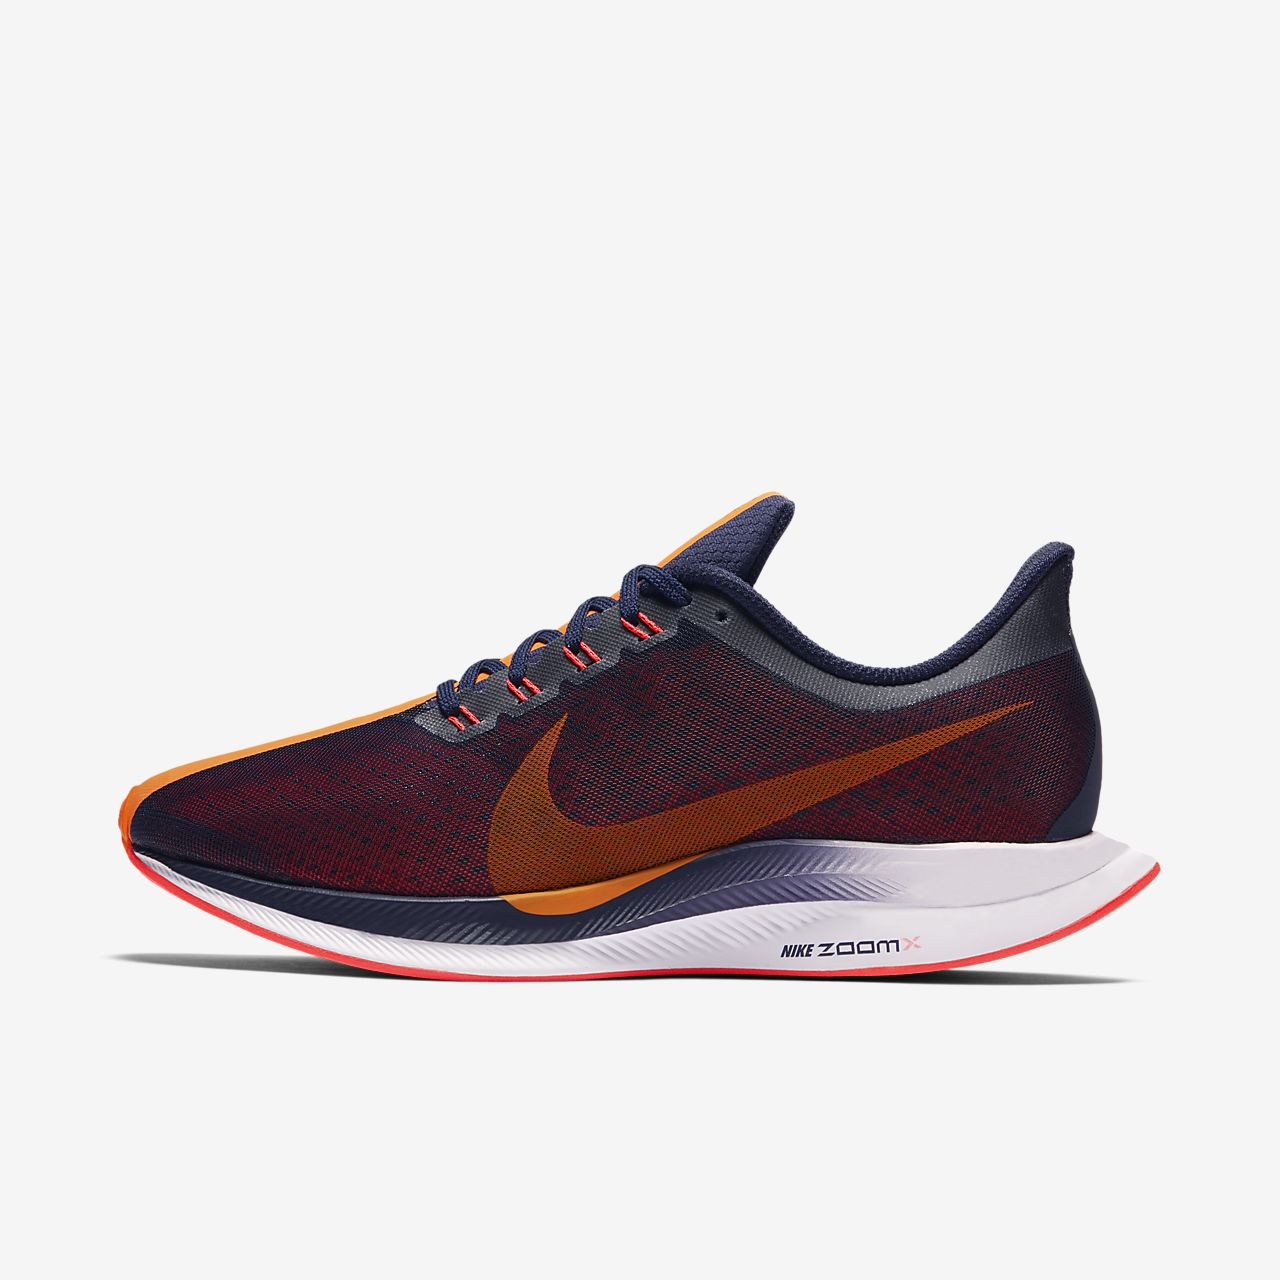 e5d9da14e66 Nike Zoom Pegasus Turbo Women s Running Shoe. Nike.com GB